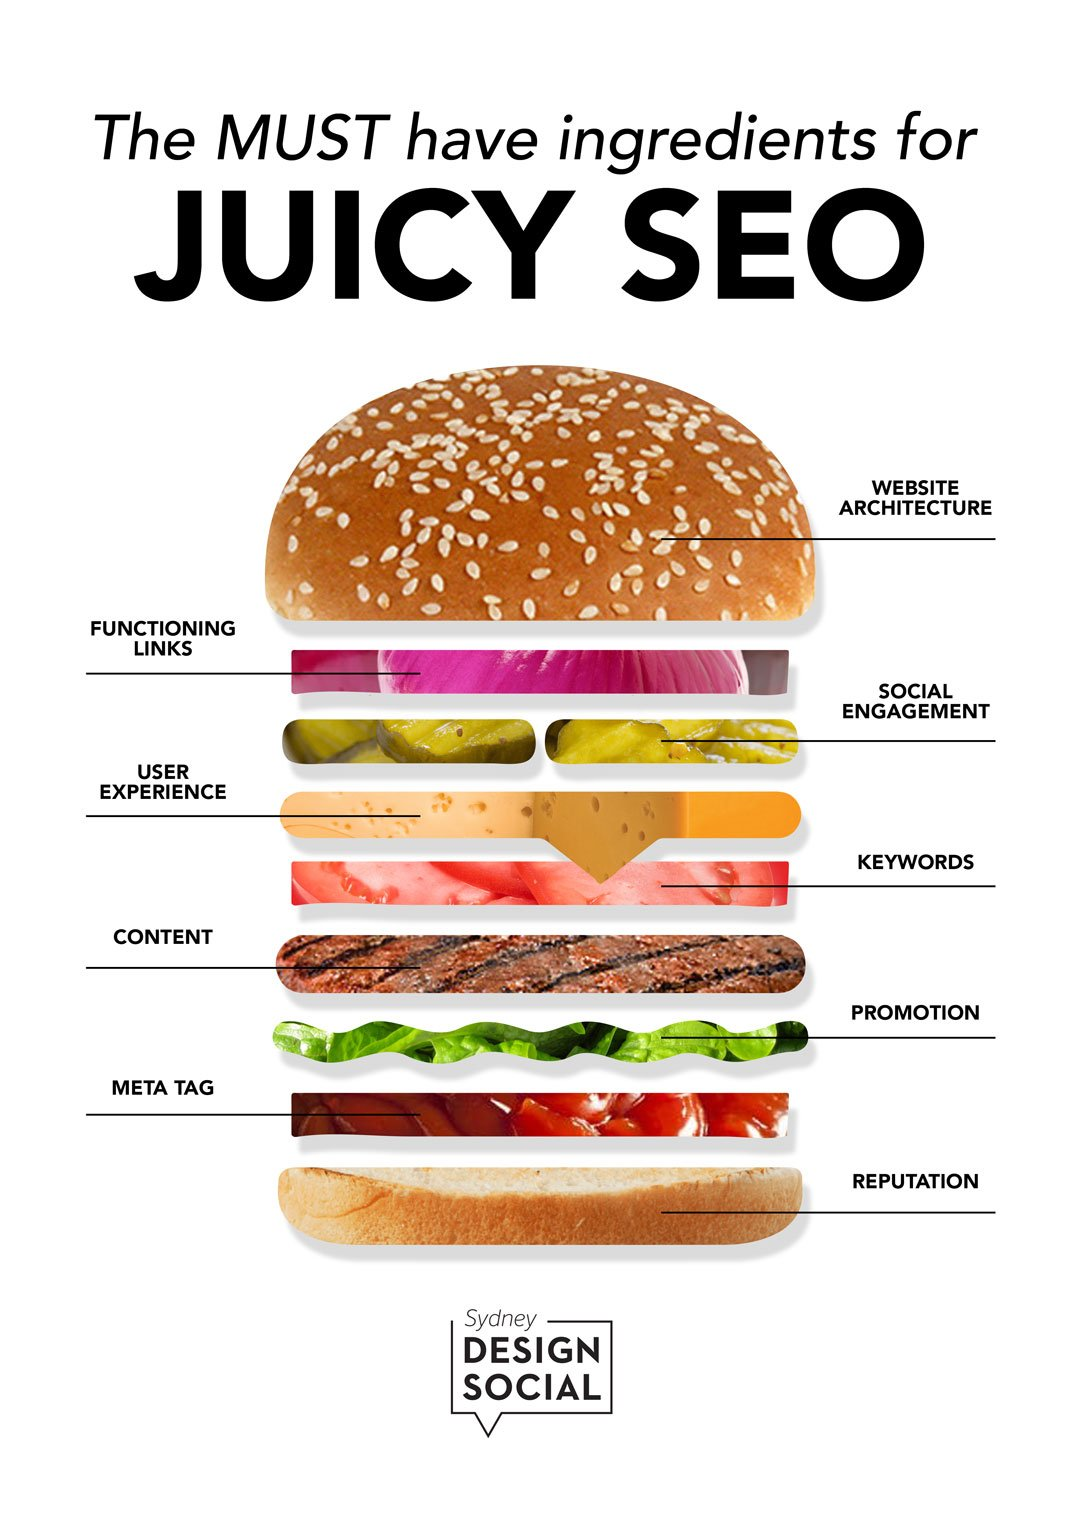 A graphic that describes each layer of a burger to be an ingredient for great search engine optimisation